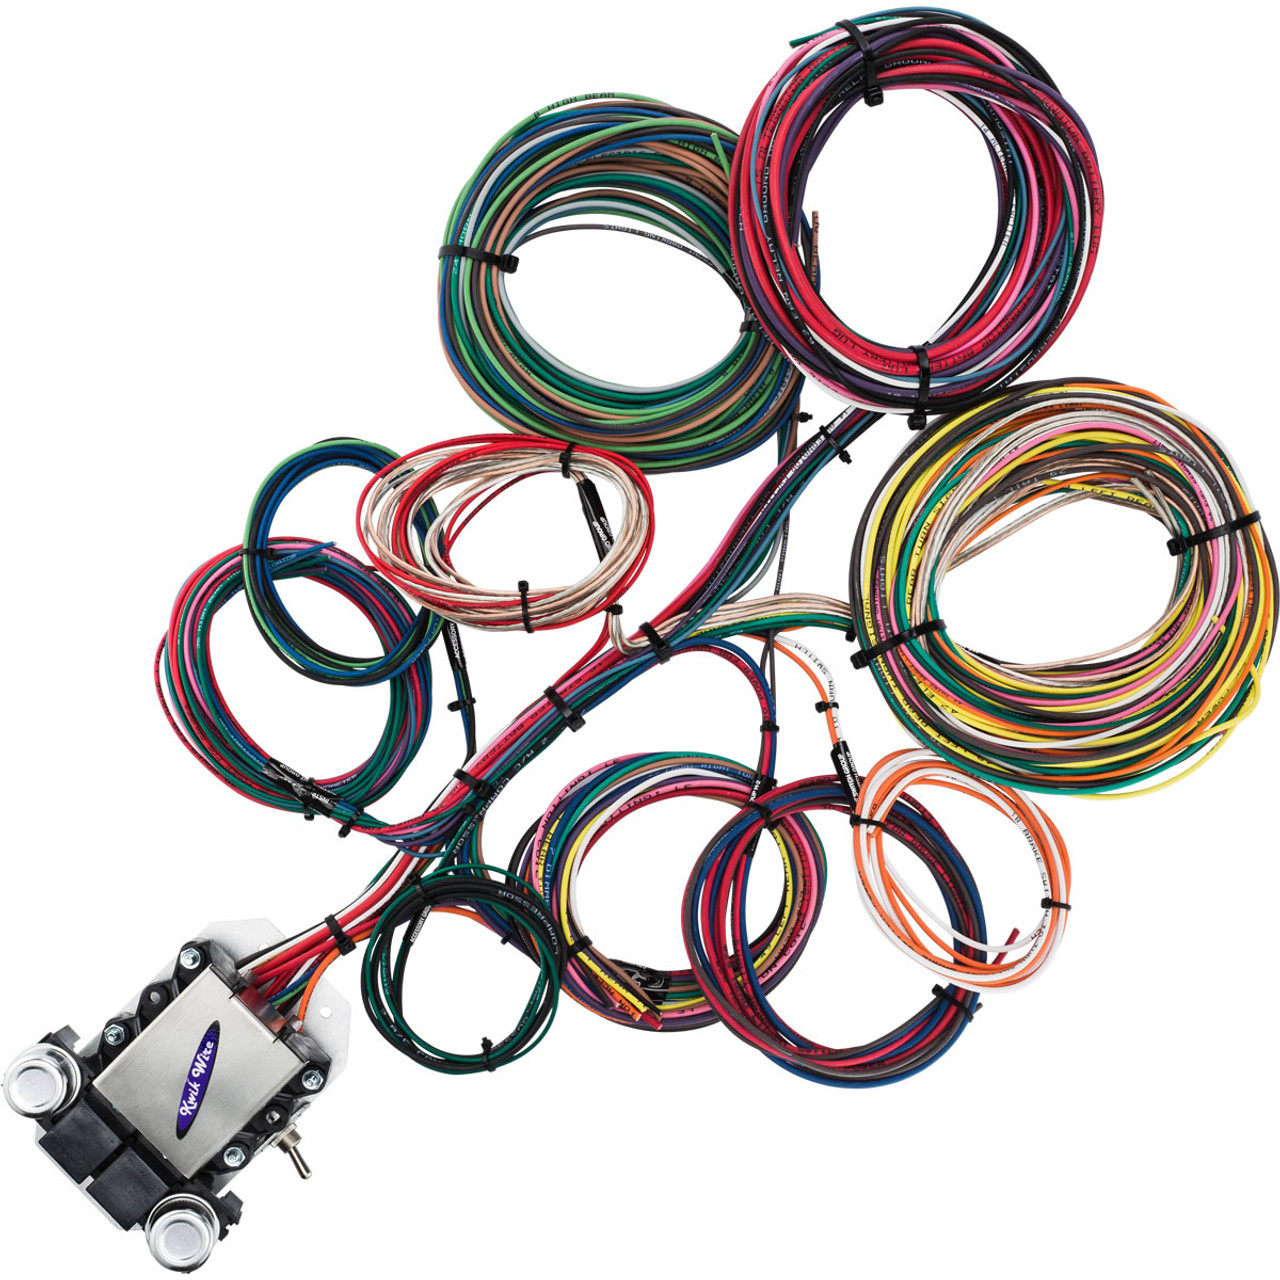 14 Circuit Wire Harness - KwikWire.com | Electrify Your Ride on maxi-seal harness, radio harness, alpine stereo harness, battery harness, electrical harness, pet harness, cable harness, suspension harness, fall protection harness, obd0 to obd1 conversion harness, nakamichi harness, swing harness, oxygen sensor extension harness, dog harness, amp bypass harness, pony harness, engine harness, safety harness,